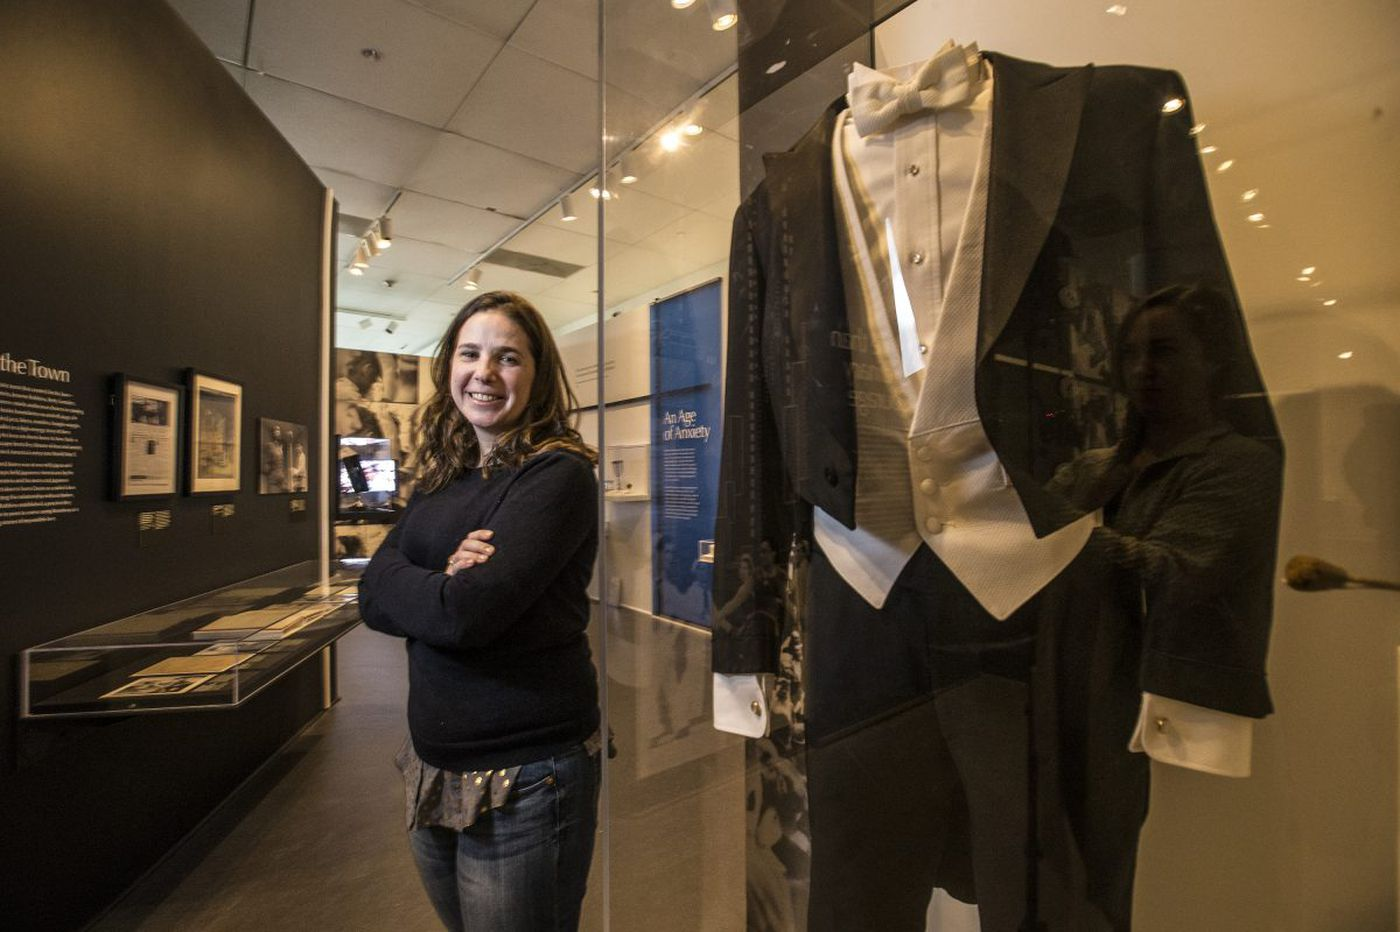 Leonard Bernstein show at the Jewish museum: 'West Side' story and 'Radical Chic' too